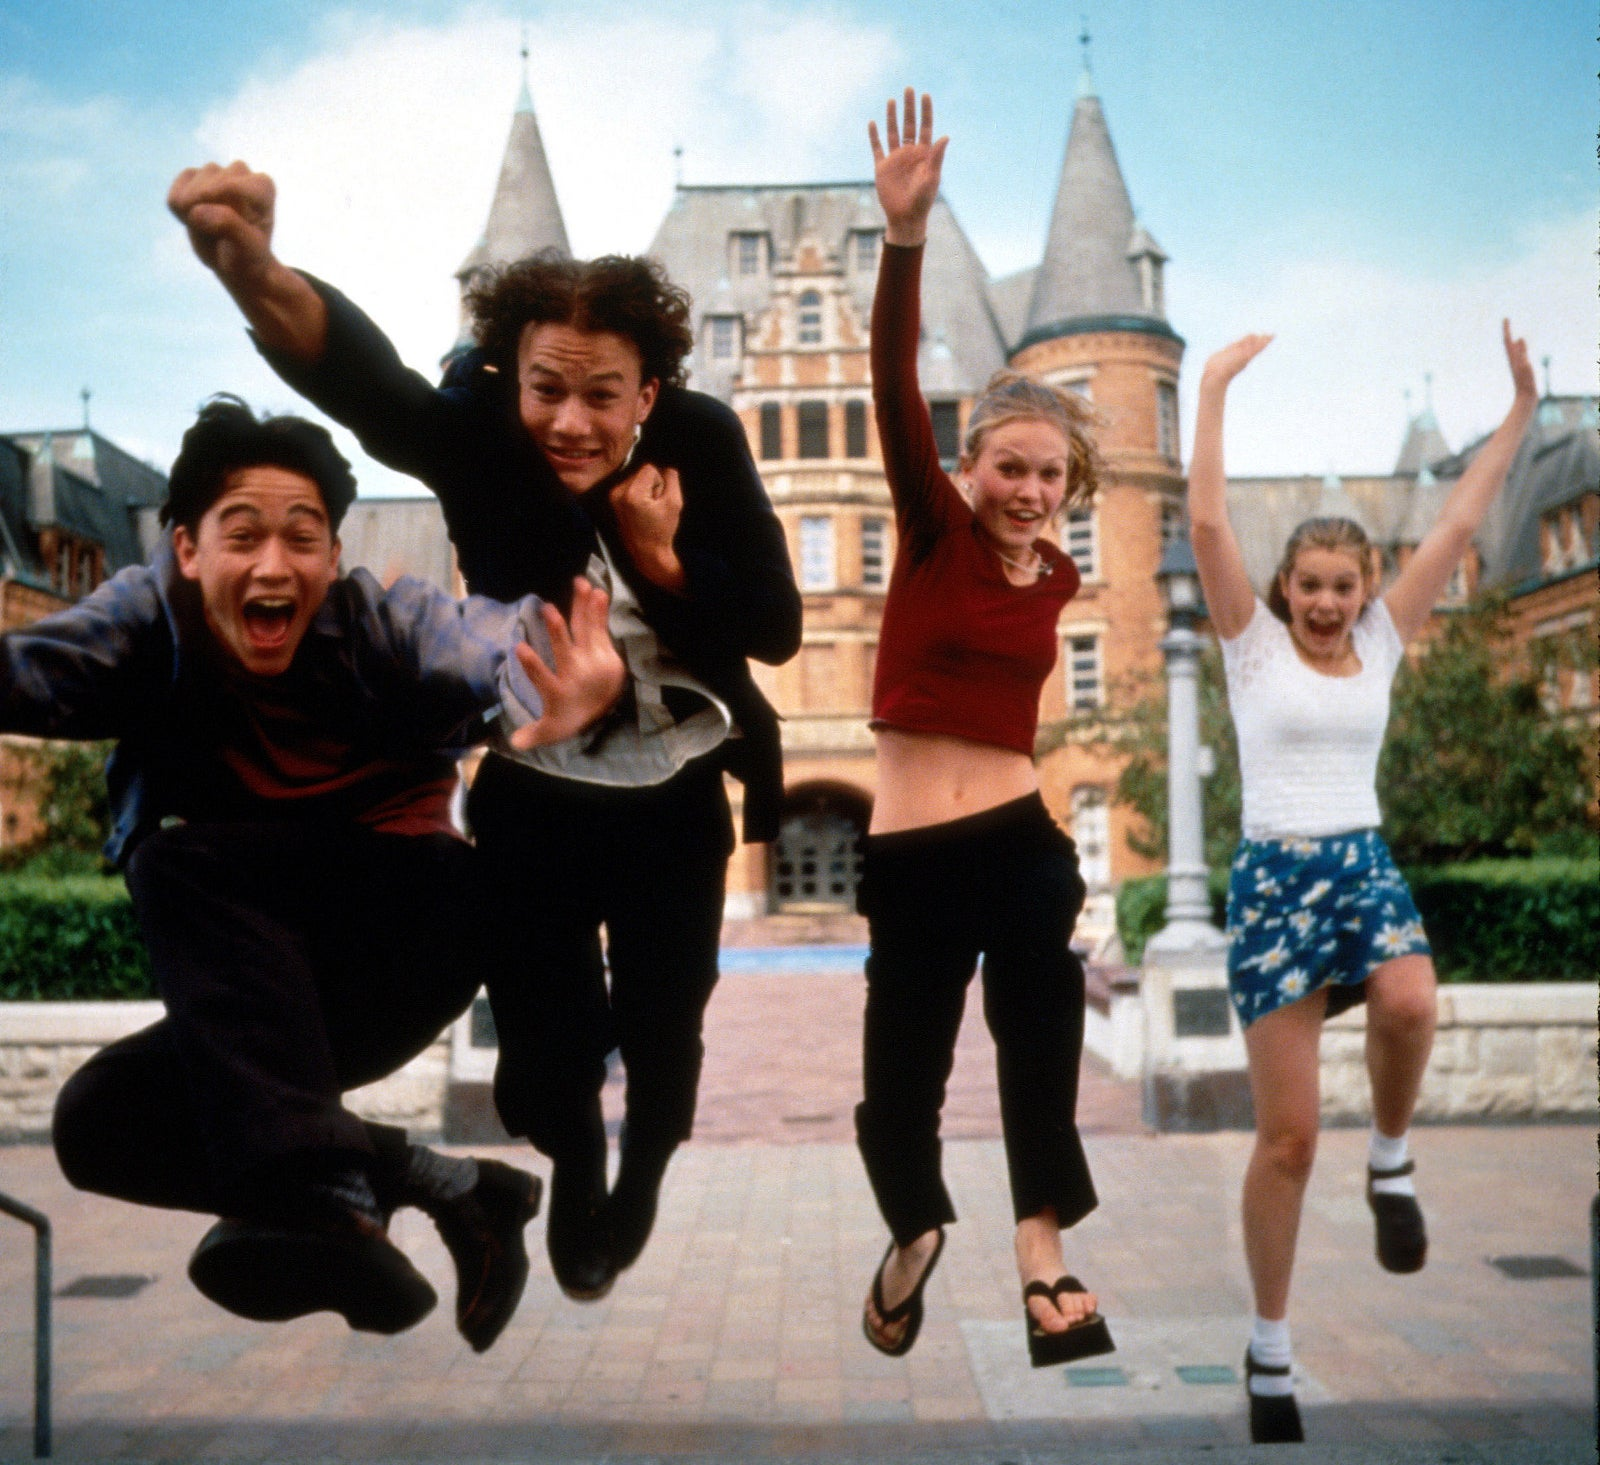 10 Things I Hate About You stars Joseph Gordon-Levitt, Heath Ledger, Stiles, and Larisa Oleynik.